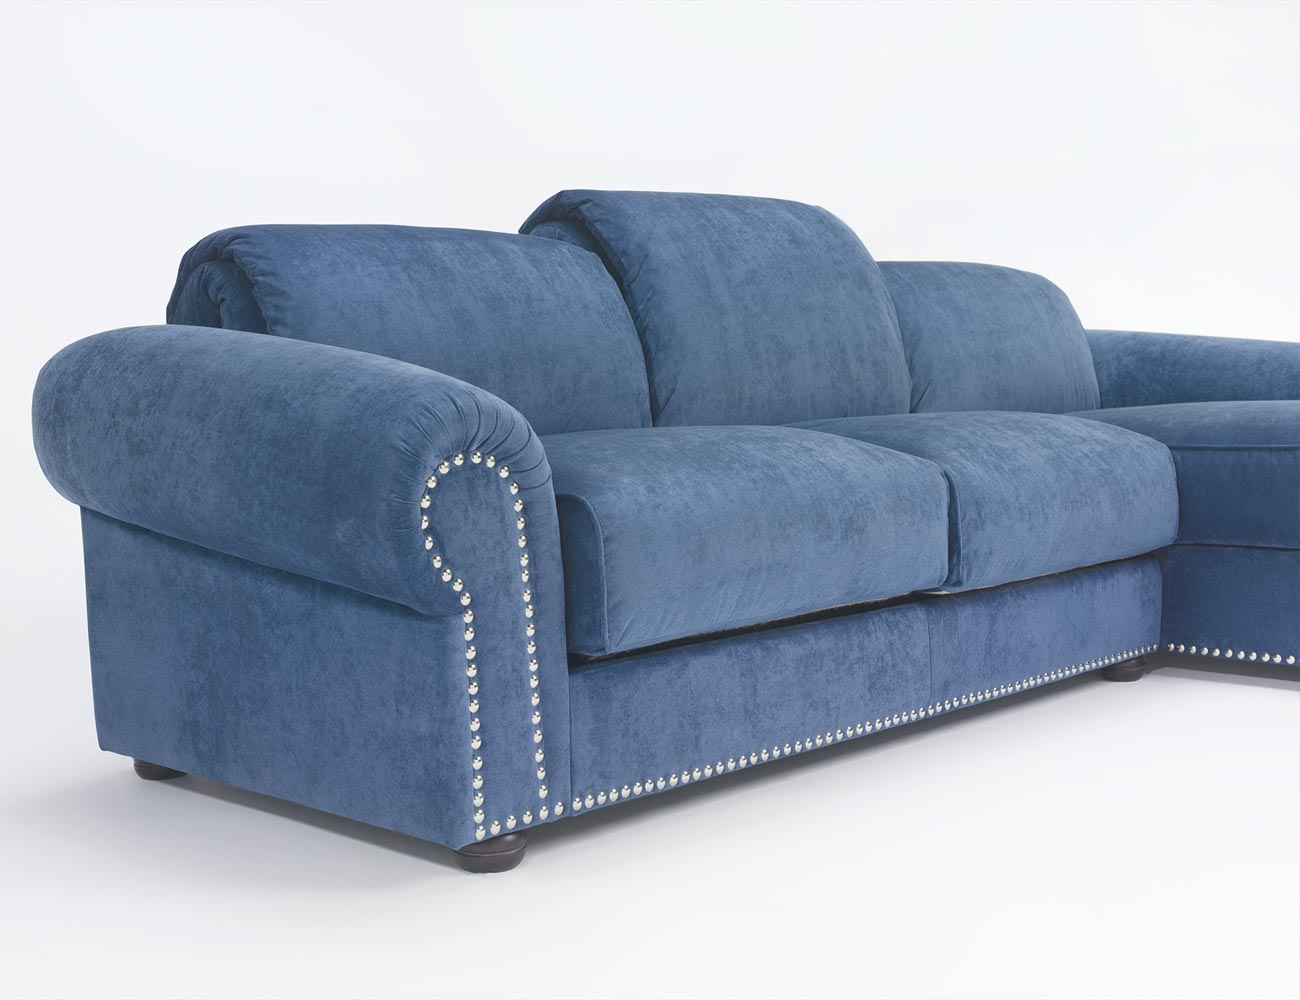 Sofa chaiselongue gran lujo decorativo azul 121